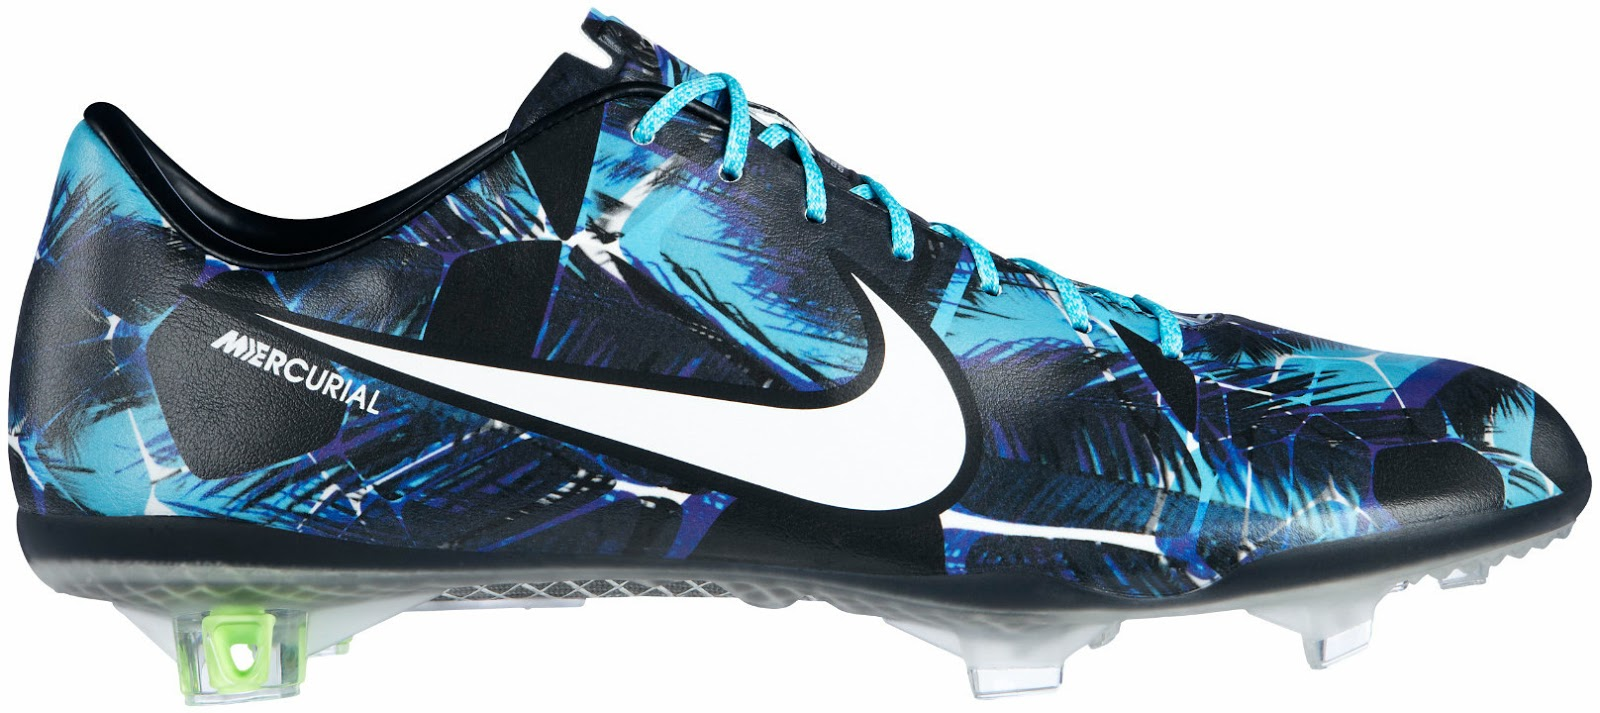 d0b576085 ... The upper of the new Nike Mercurial Vapor Tropical Pack comes with the  Tejin material